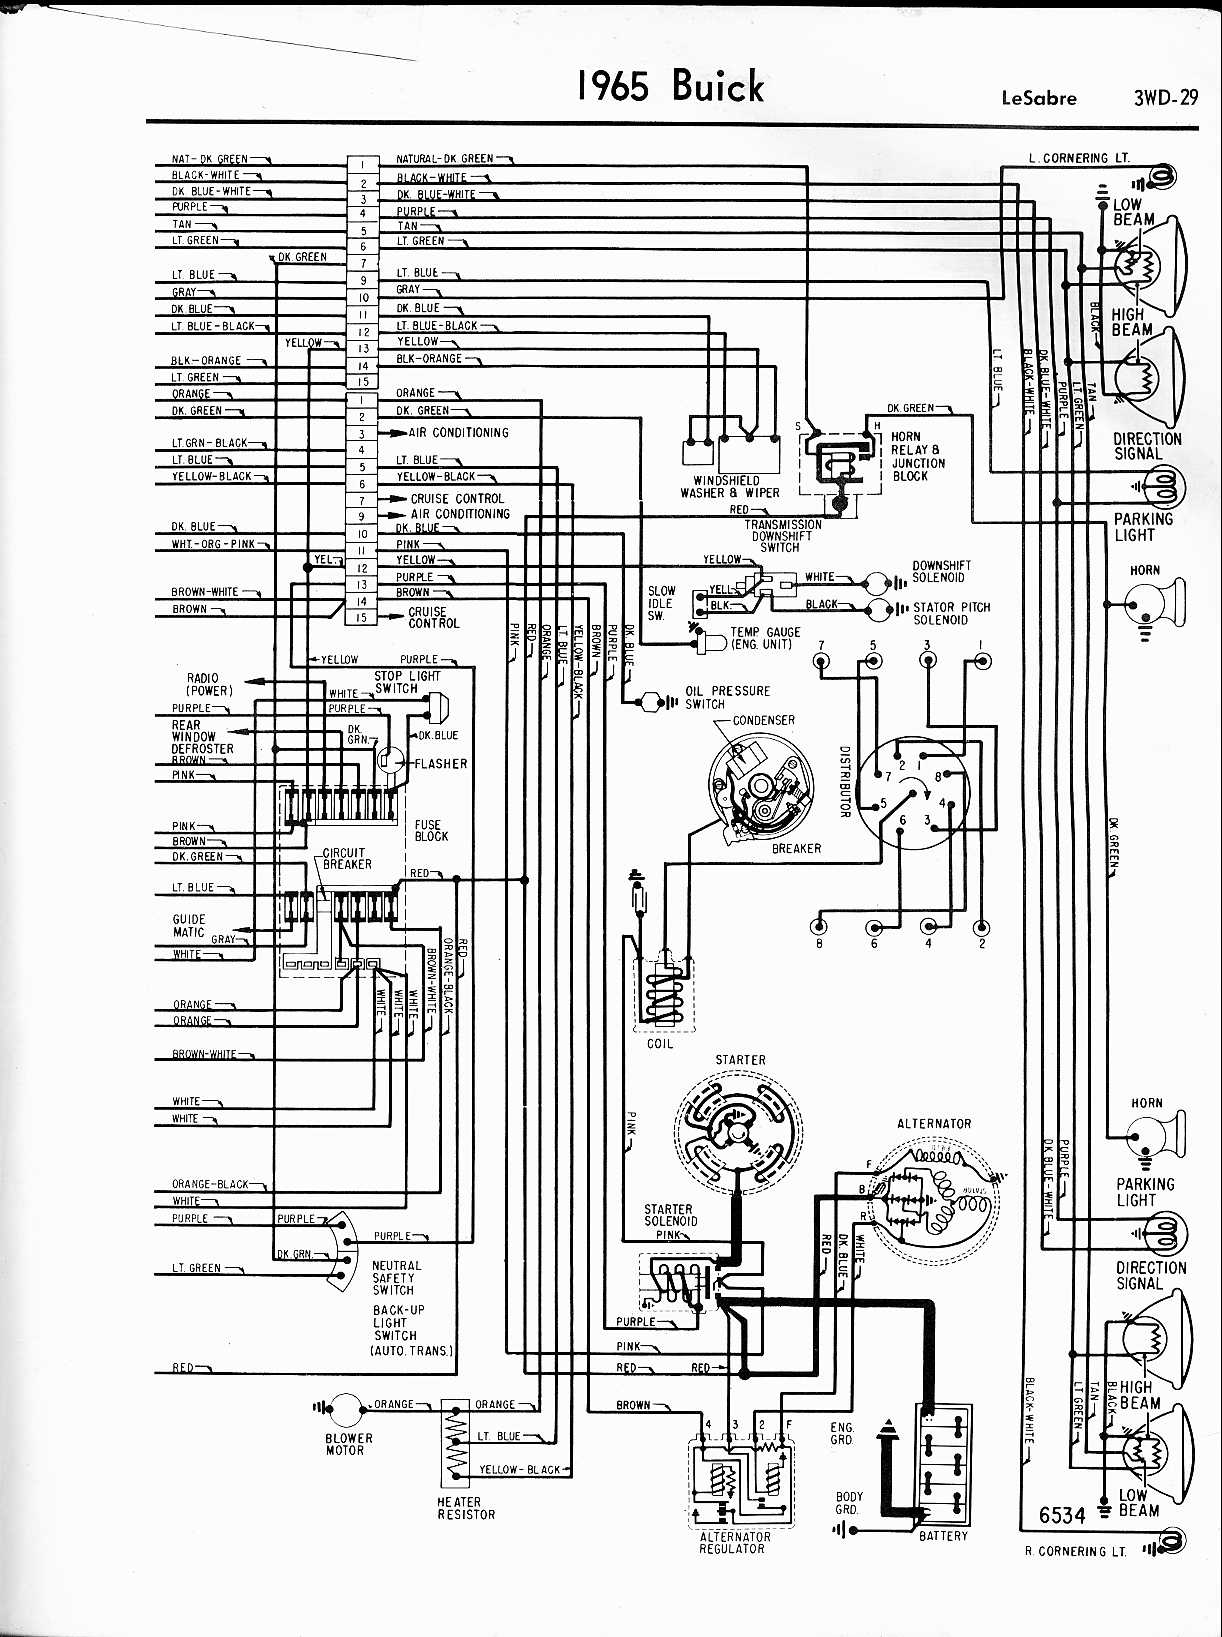 2000 Ford Headlight Switch Wiring Diagram Simple Guide About 1970 Light Buick Diagrams 1957 1965 Mustang Ranger